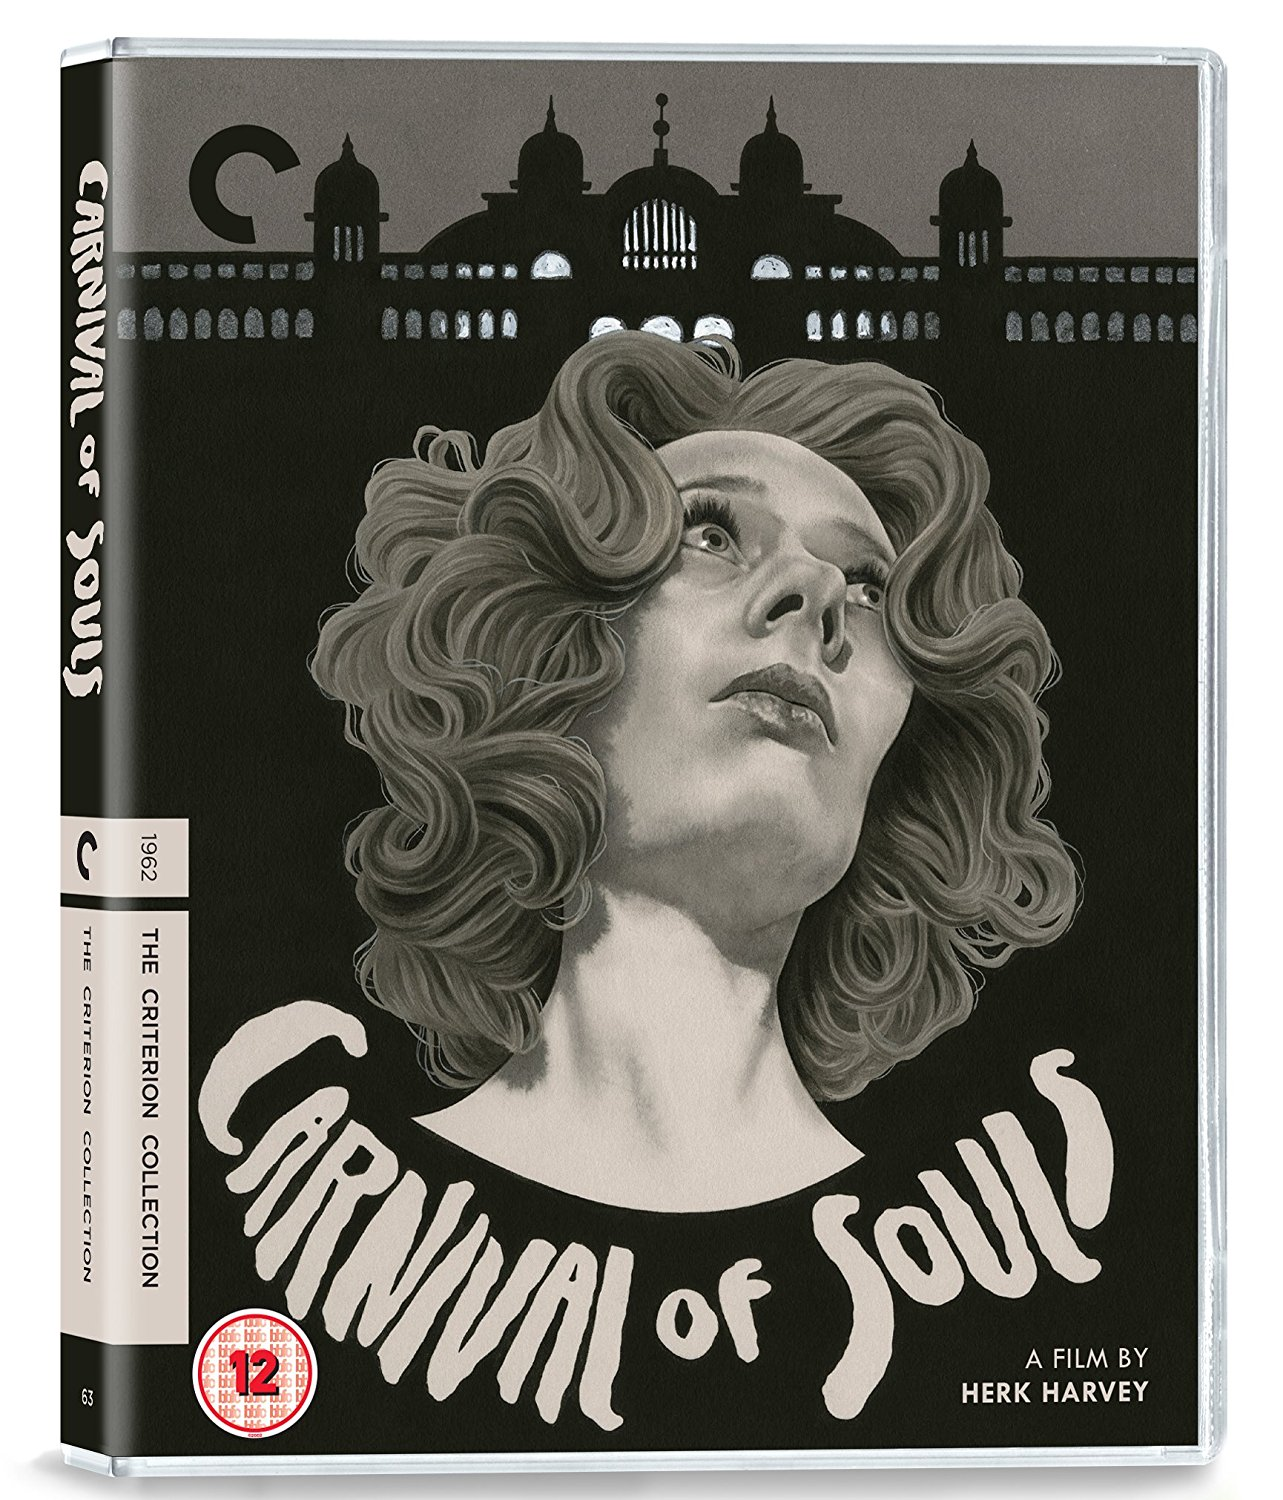 Carnival Of Souls Criterion Blu-ray review – as deliriously terrifying as ever